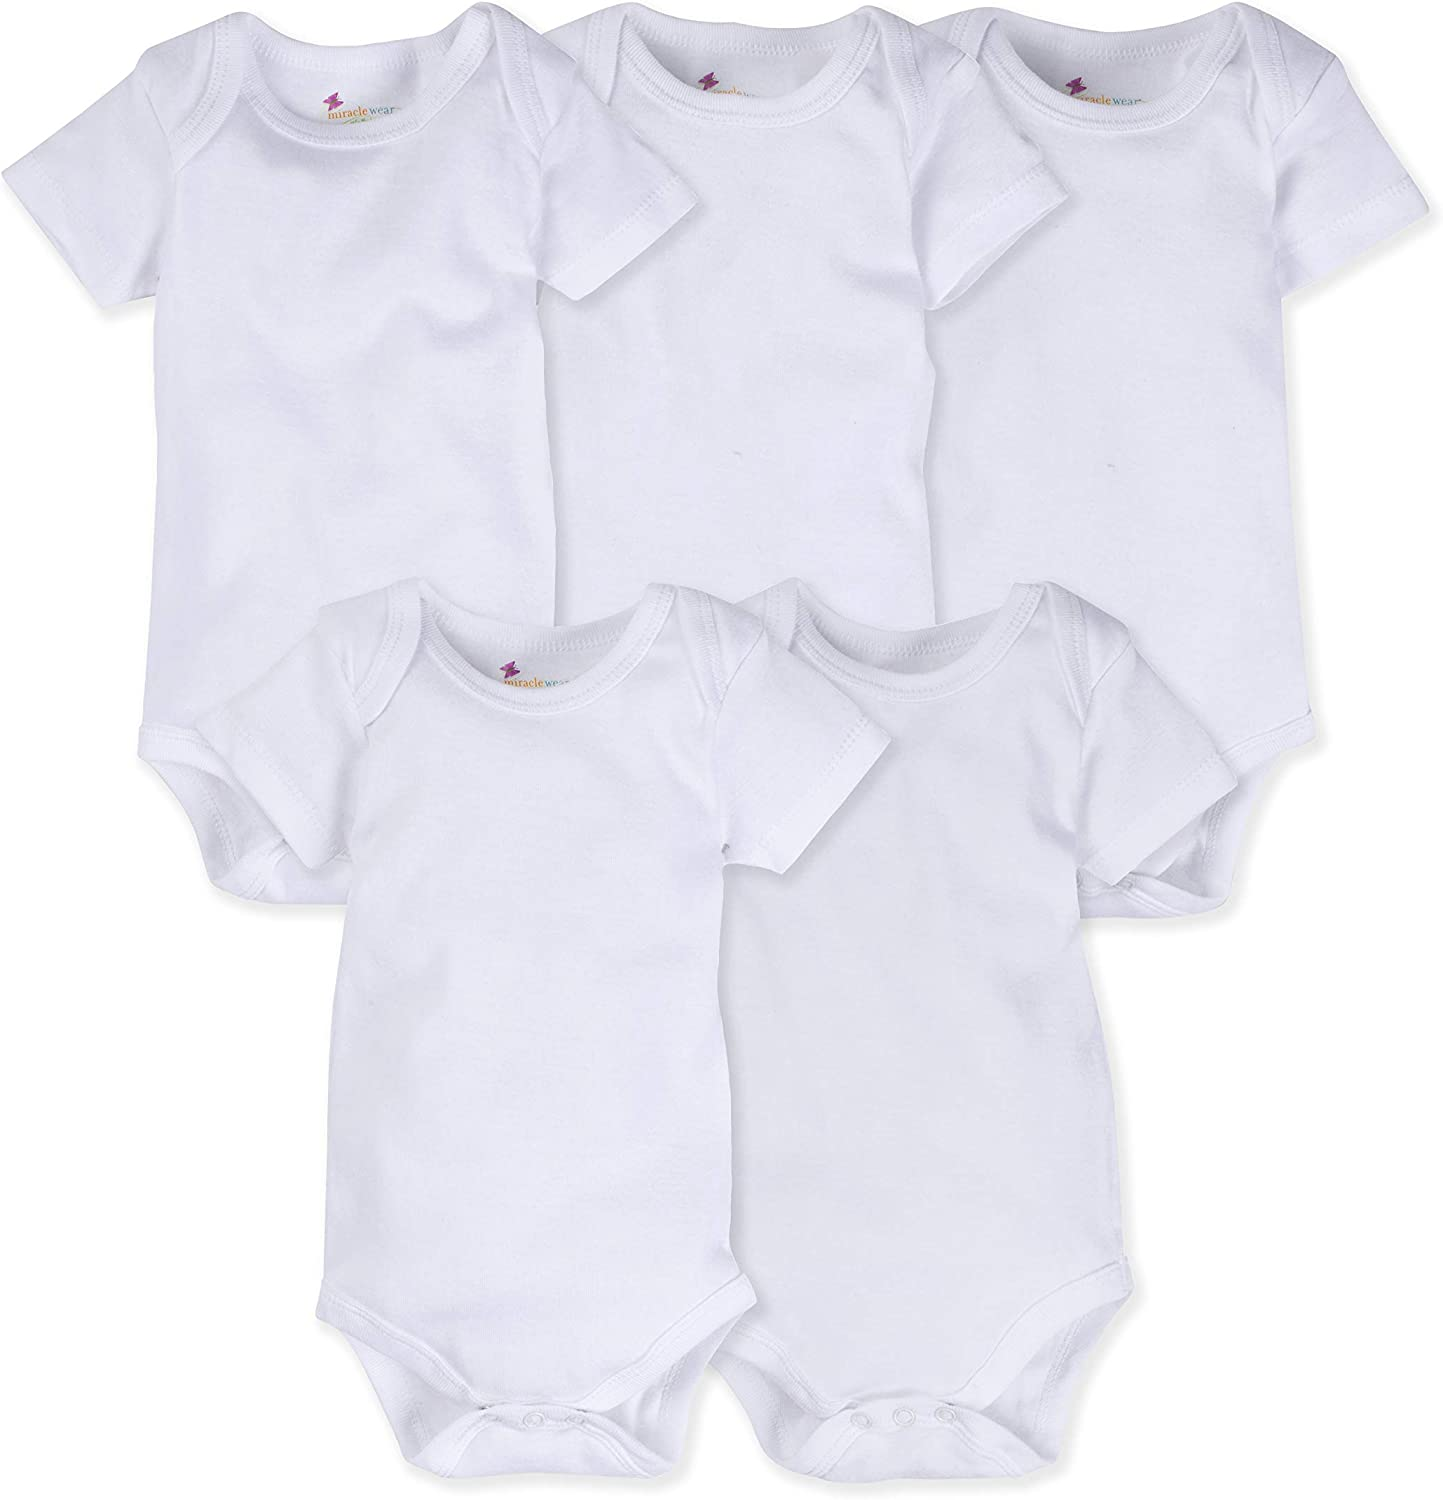 MiracleWear Solid Color Baby 5-Pack Bodysuits Short-Sleeve Daywear for Boy, Girl & Neutral Unisex …